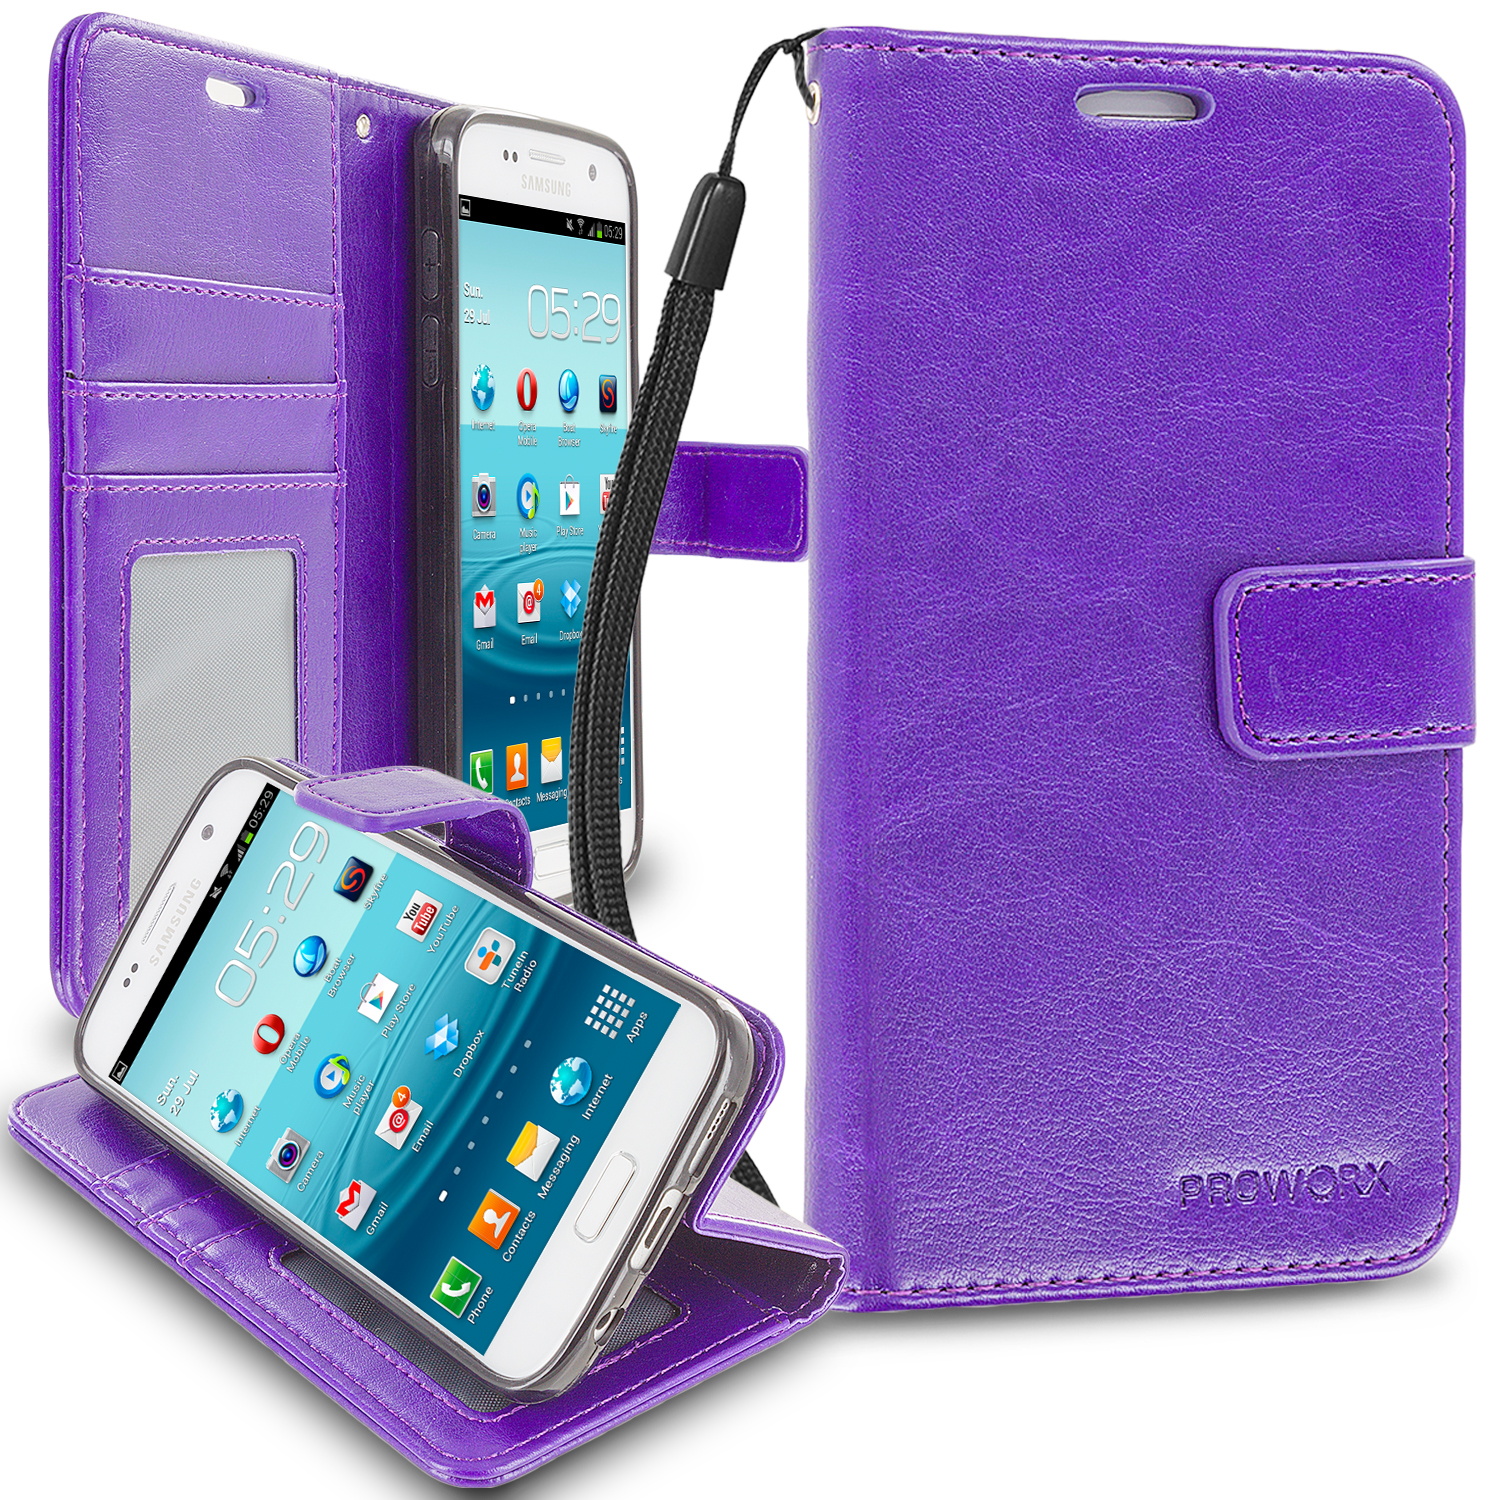 Samsung Galaxy S7 Purple ProWorx Wallet Case Luxury PU Leather Case Cover With Card Slots & Stand